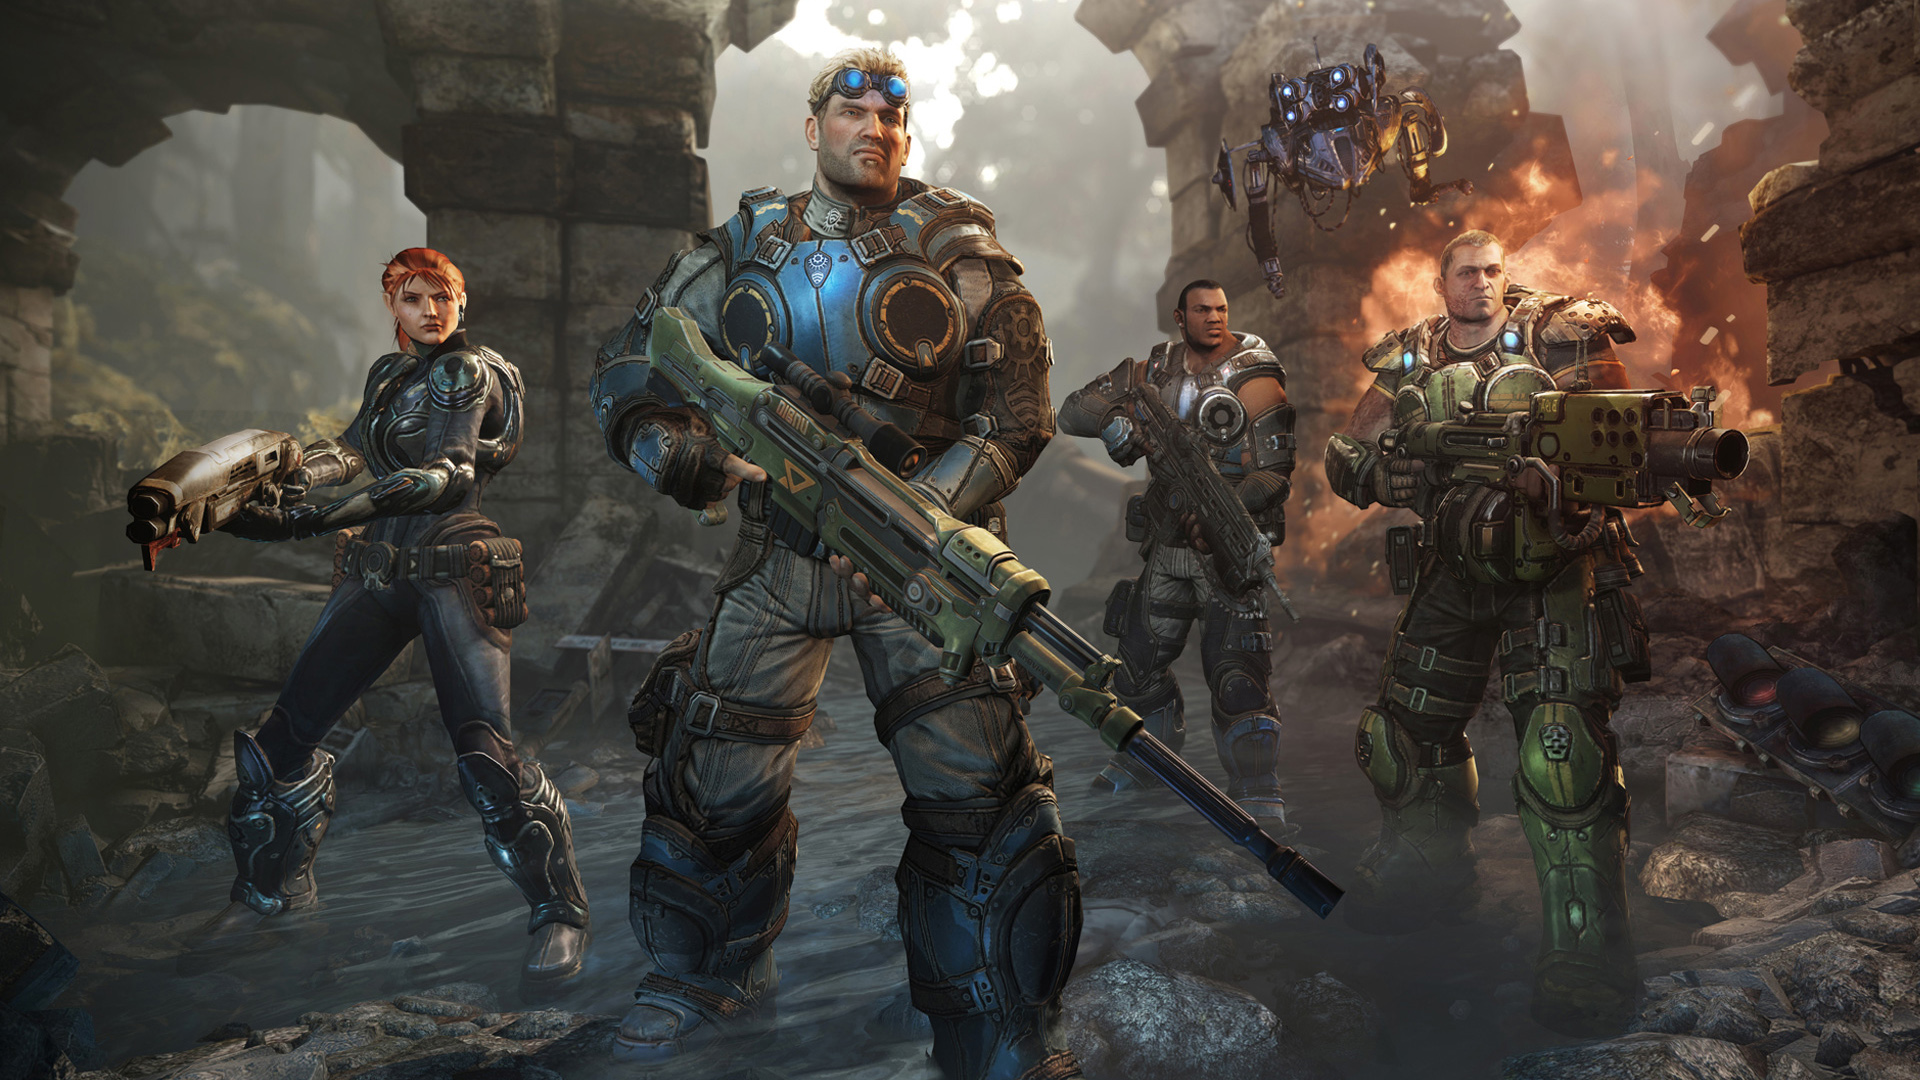 Gears of War Judgment Game Wallpapers HD Wallpapers 1920x1080